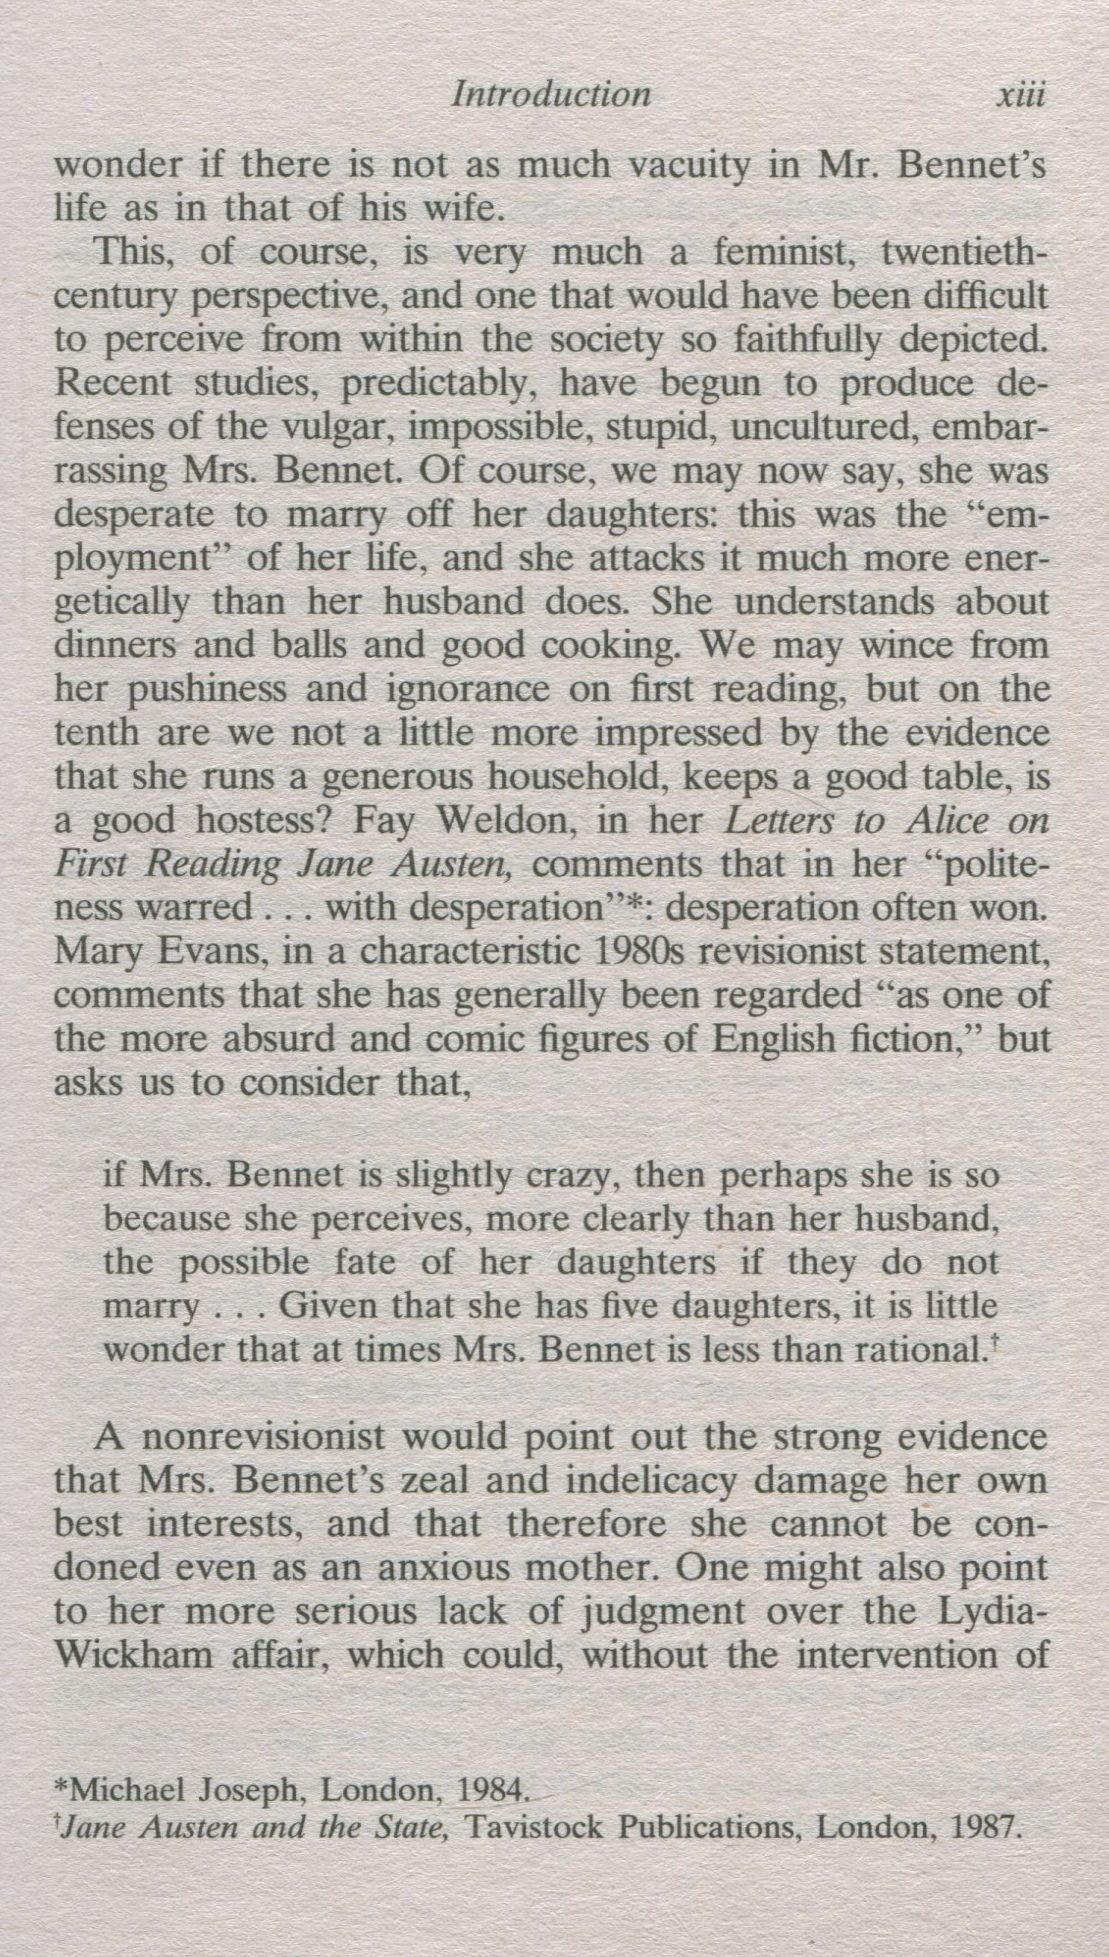 fay weldon letters to alice and pride prejudice To consider connections between jane austen's pride and prejudice and fay weldon's letters to alice , while demonstrating an awareness of the ways in which the contexts of each text inform their subjects and values, requires that.